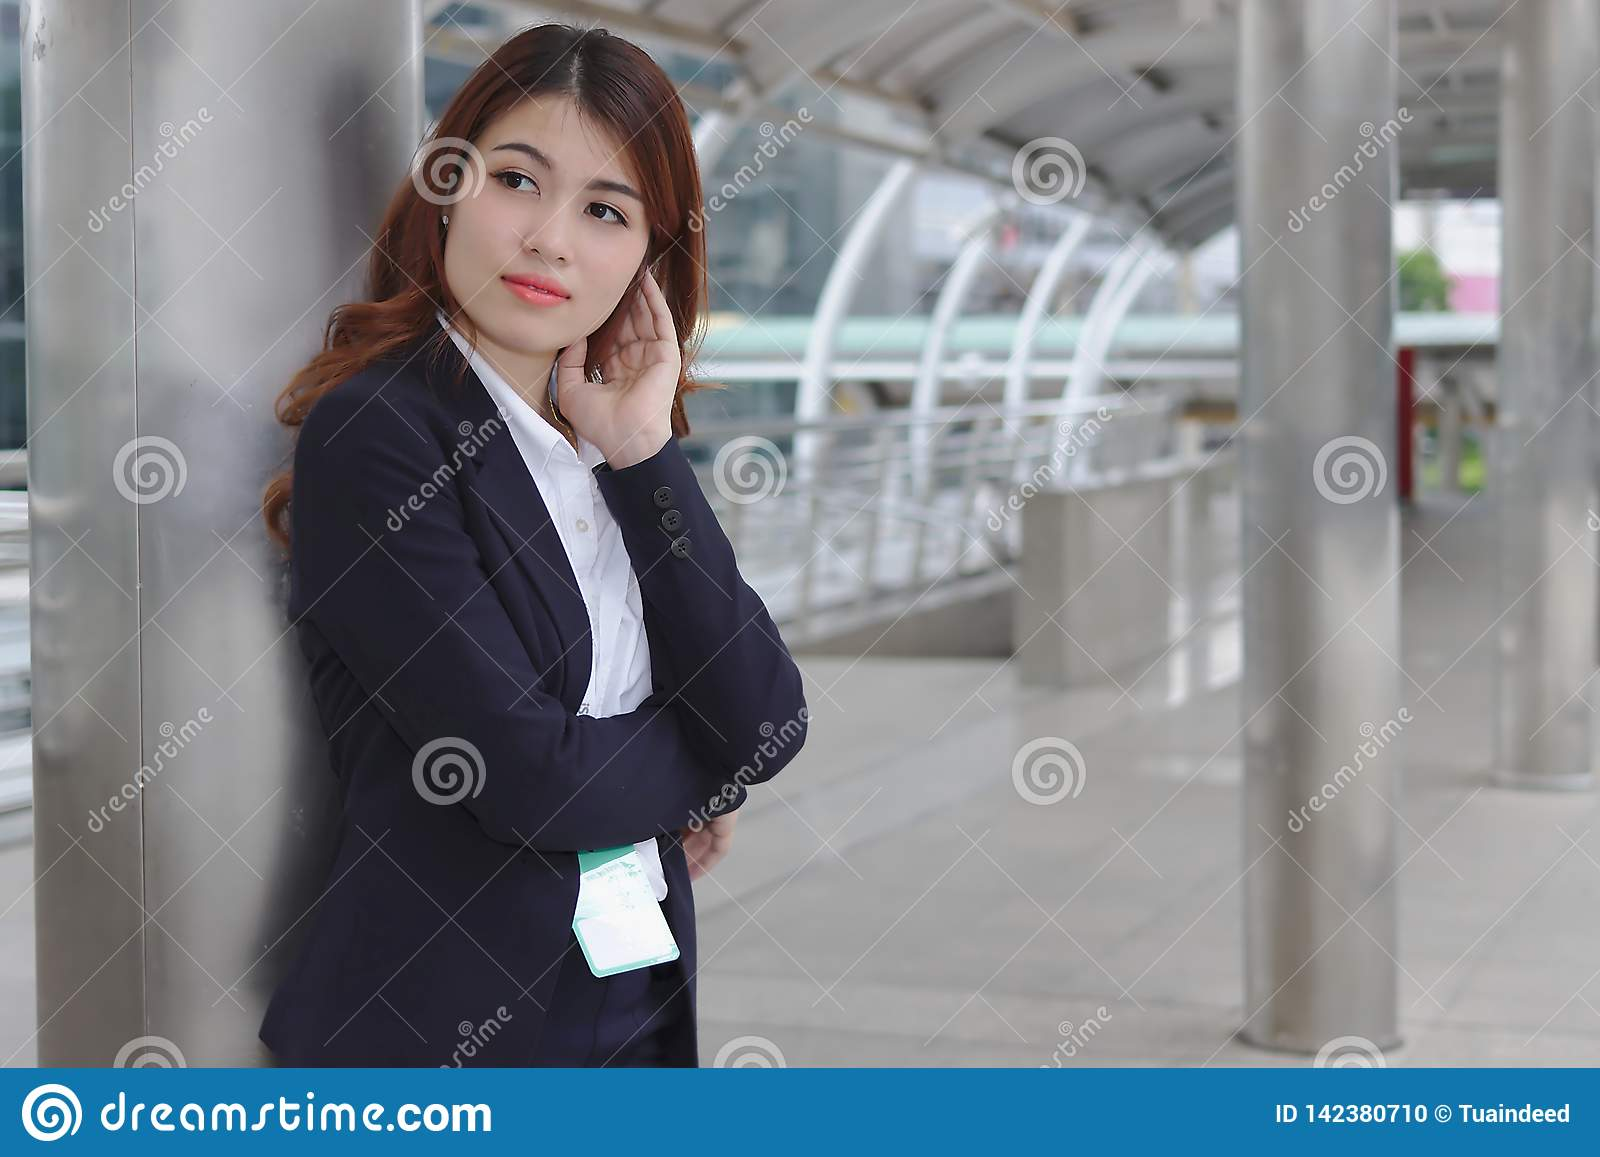 Portrait of beauty young Asian businesswoman in suit standing and looking at far away. Thinking and thoughtful business concept